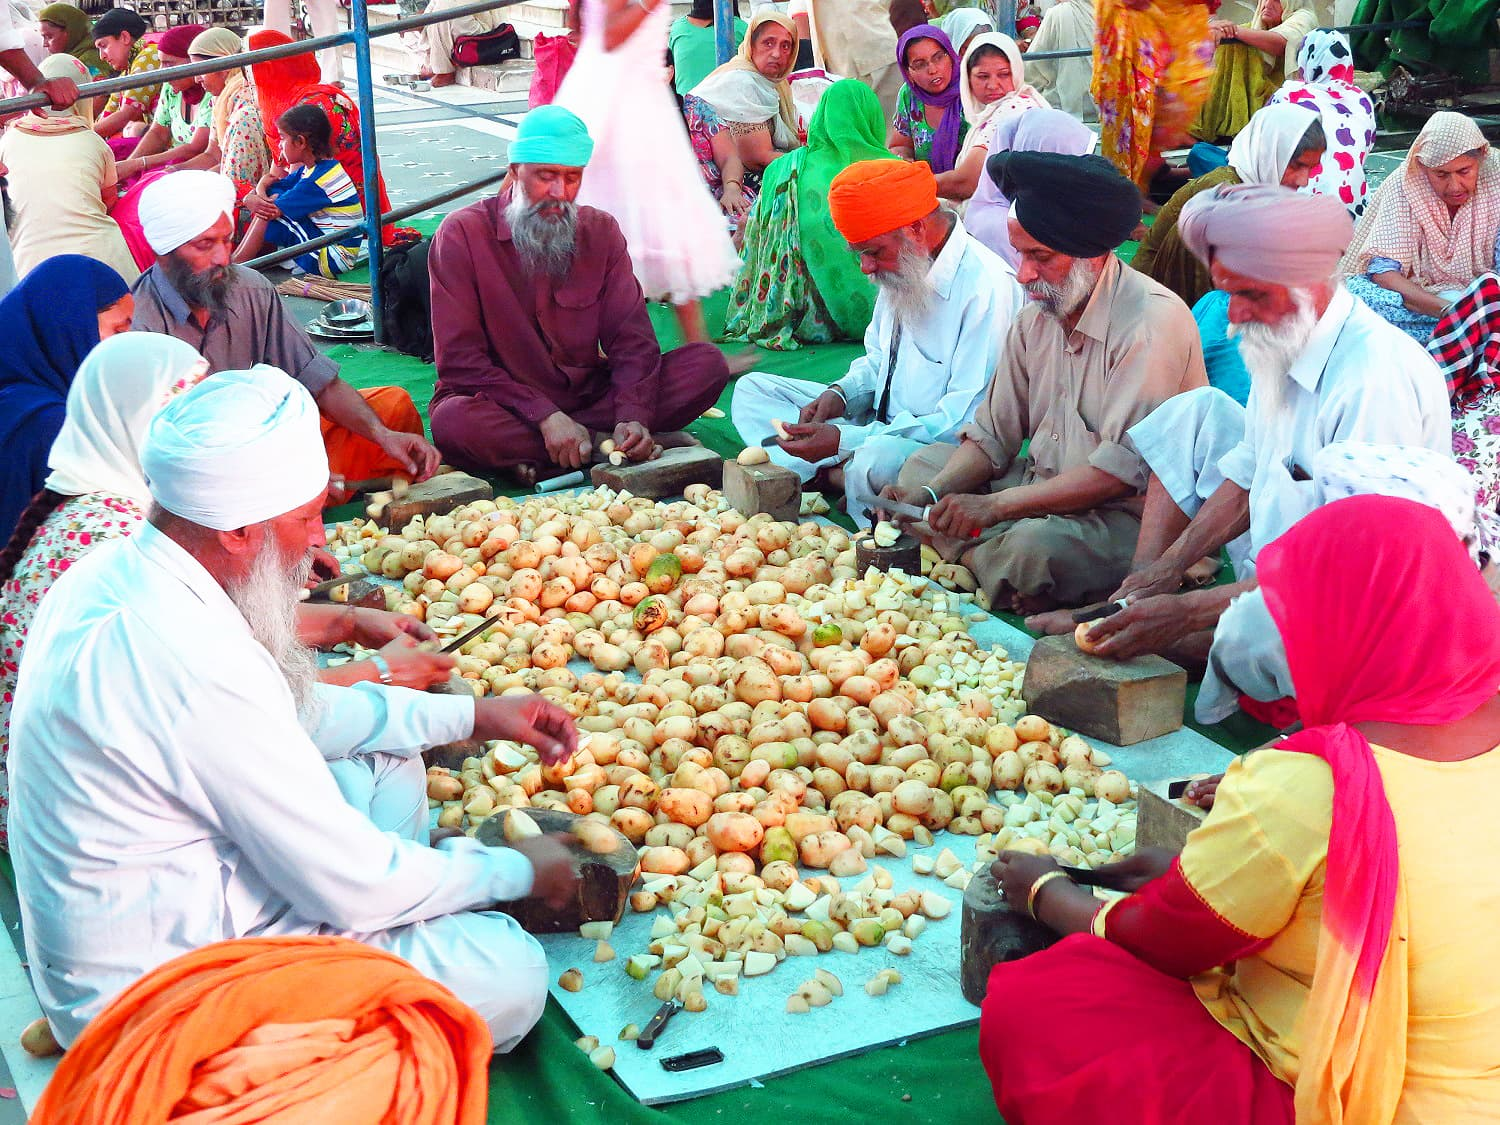 Sikhs preparing for food at the Golden Temple, Amritsar.